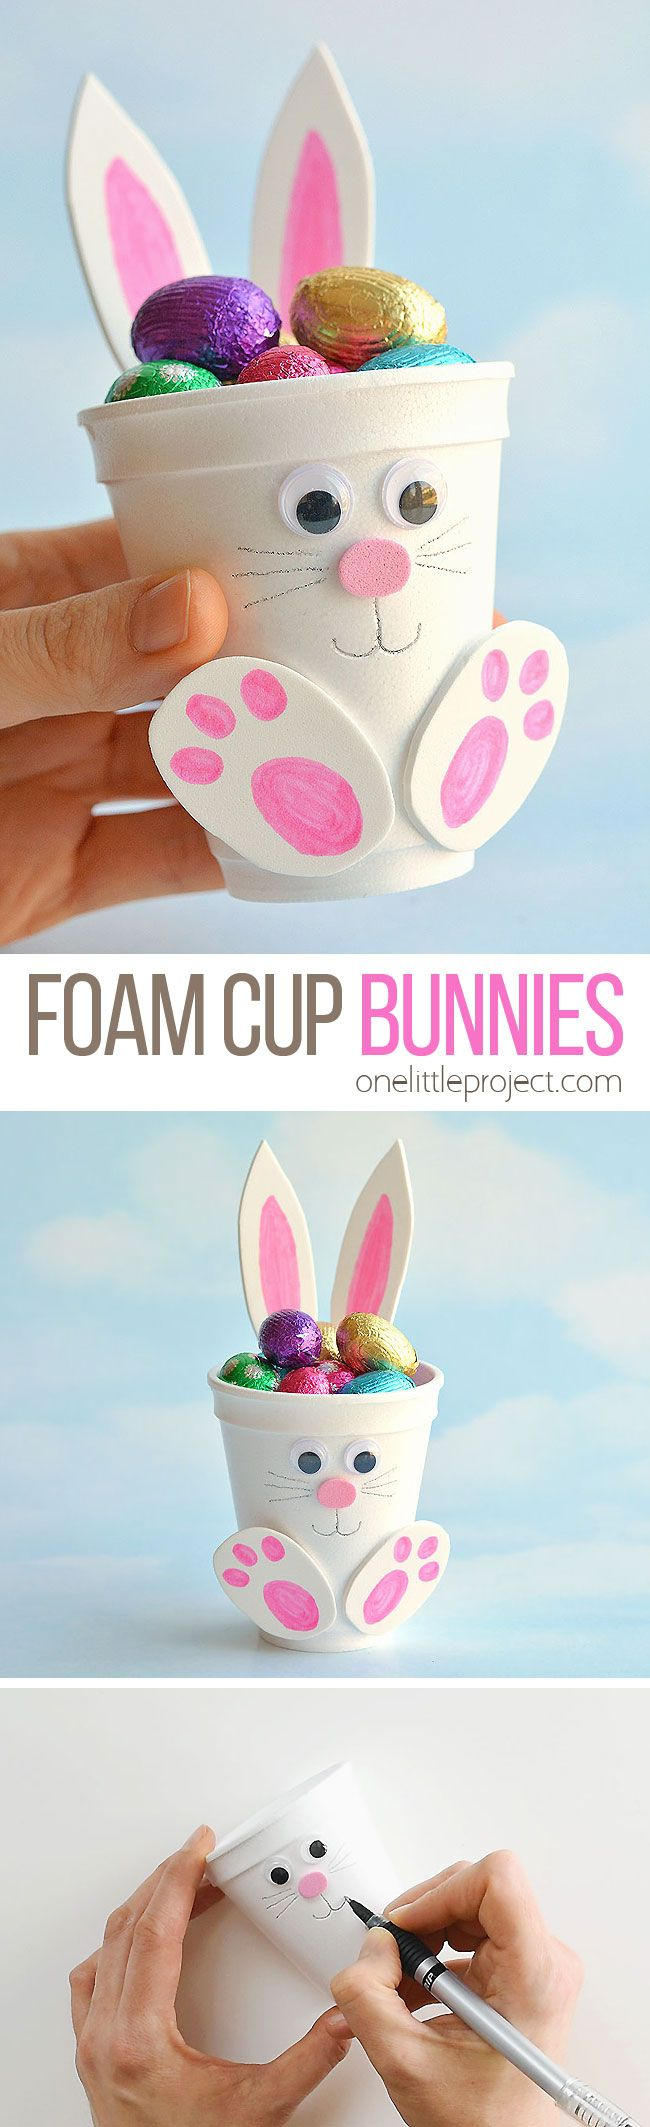 DIY Craft: These foam cup bunnies are SO CUTE! I love how easy they are to make with simple craft supplies! Fill them with candy, chocolate eggs, pencil crayons, or even small toys. They take less than 10 minutes and make an awesome Easter treat idea! Make them as a decoration for the Easter table, or give them away as small Easter gifts. This is such a fun Easter craft for kids!